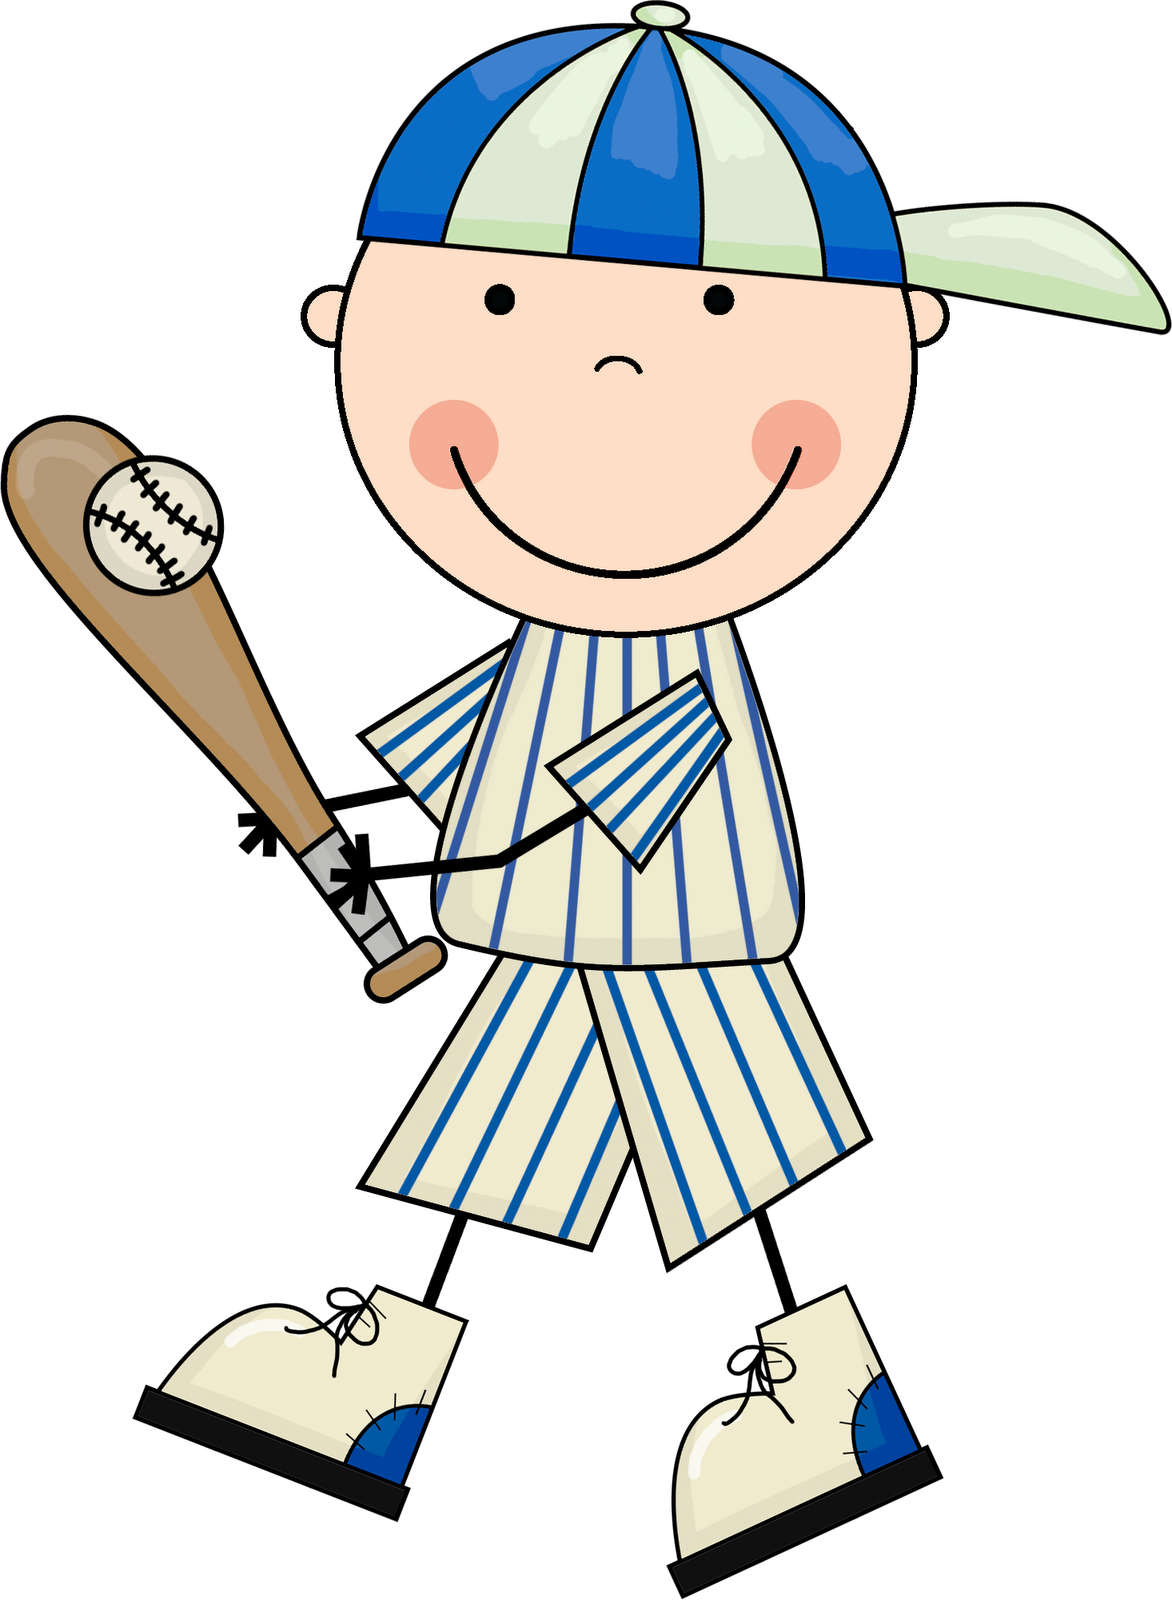 Animated baseball clipart jpg freeuse stock Baseball borders clipart kid - Clipartix jpg freeuse stock